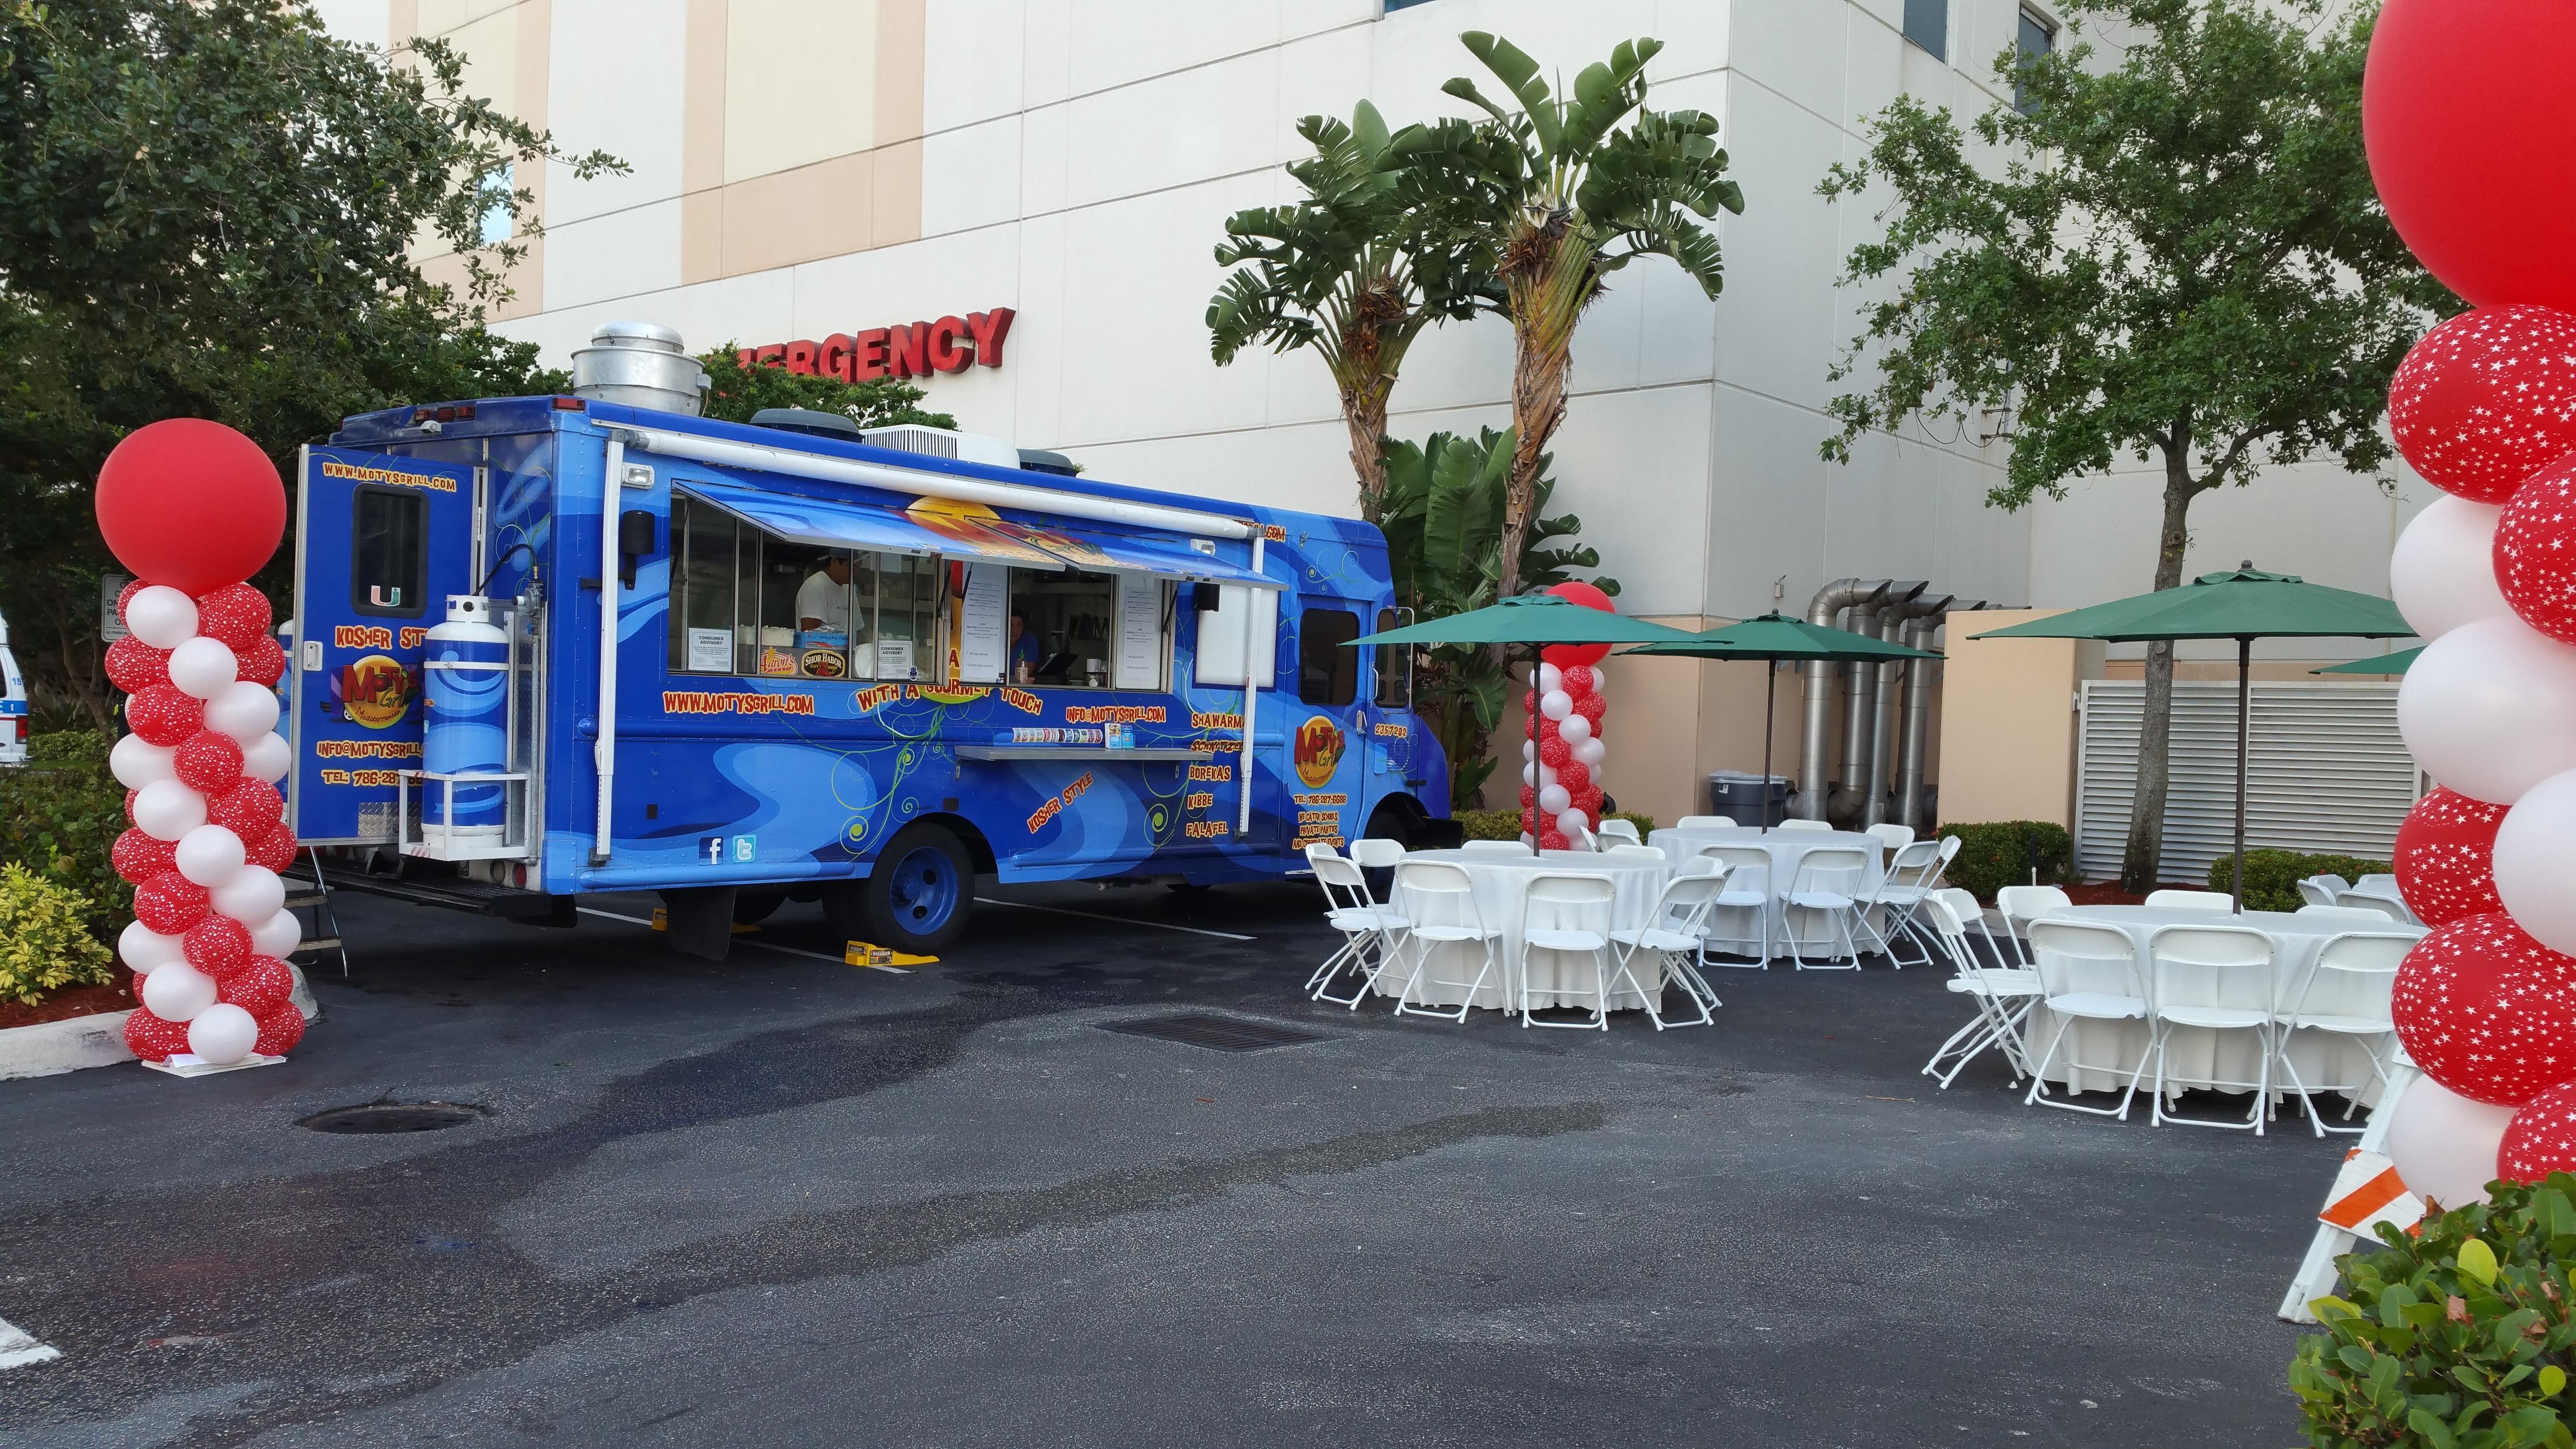 Plan A Food Truck Event Are You Planning An Event Food Trucks Are A Trendy And Simple Catering Idea Call Us Today T Food Truck Events Event Food Food Truck